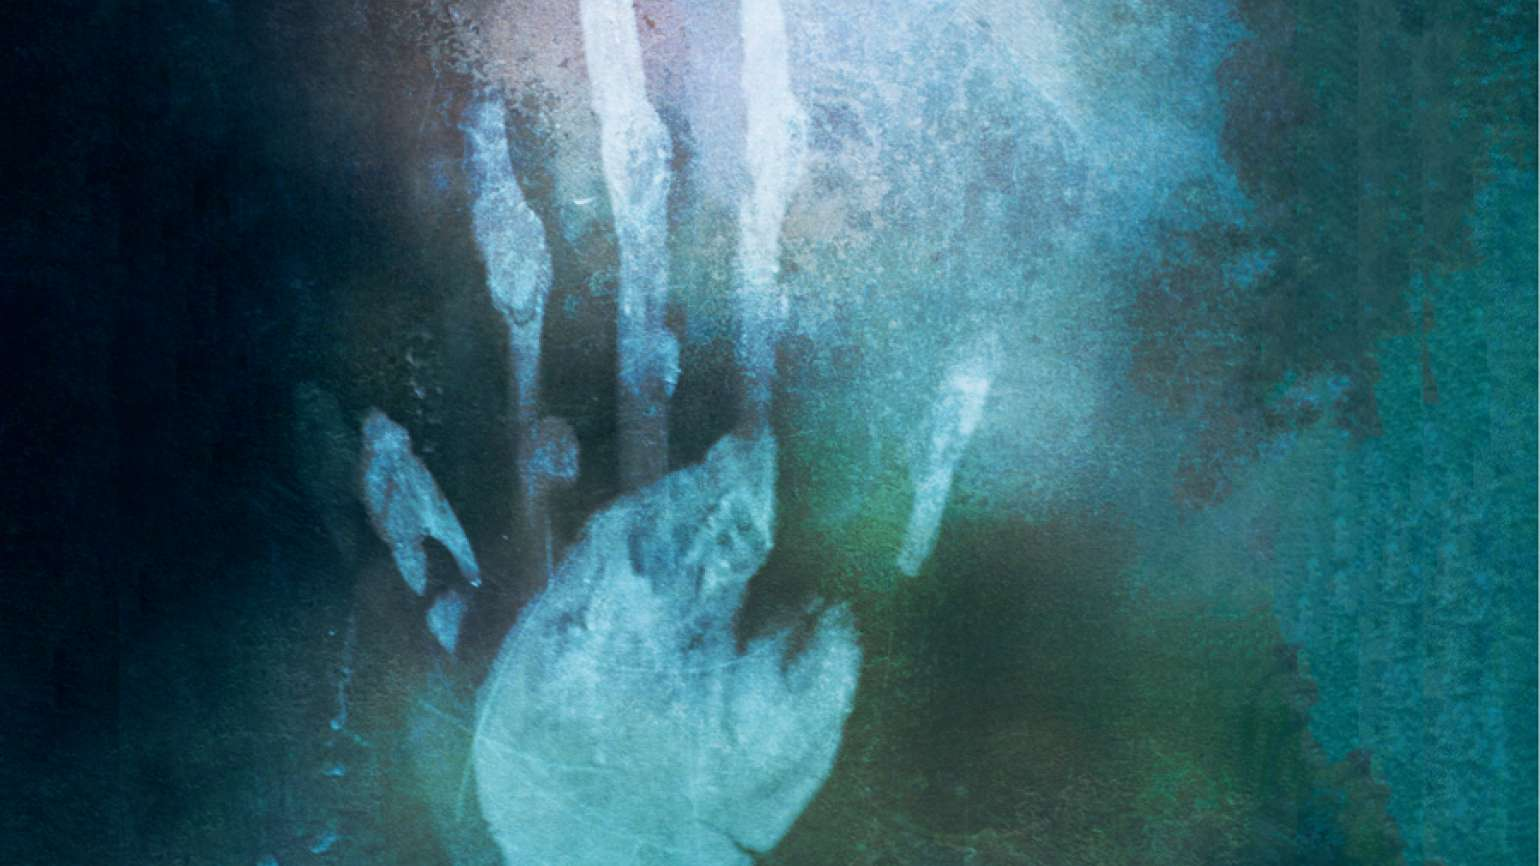 An artist's rendering of a mysterious handprint on a mirror of blue and green